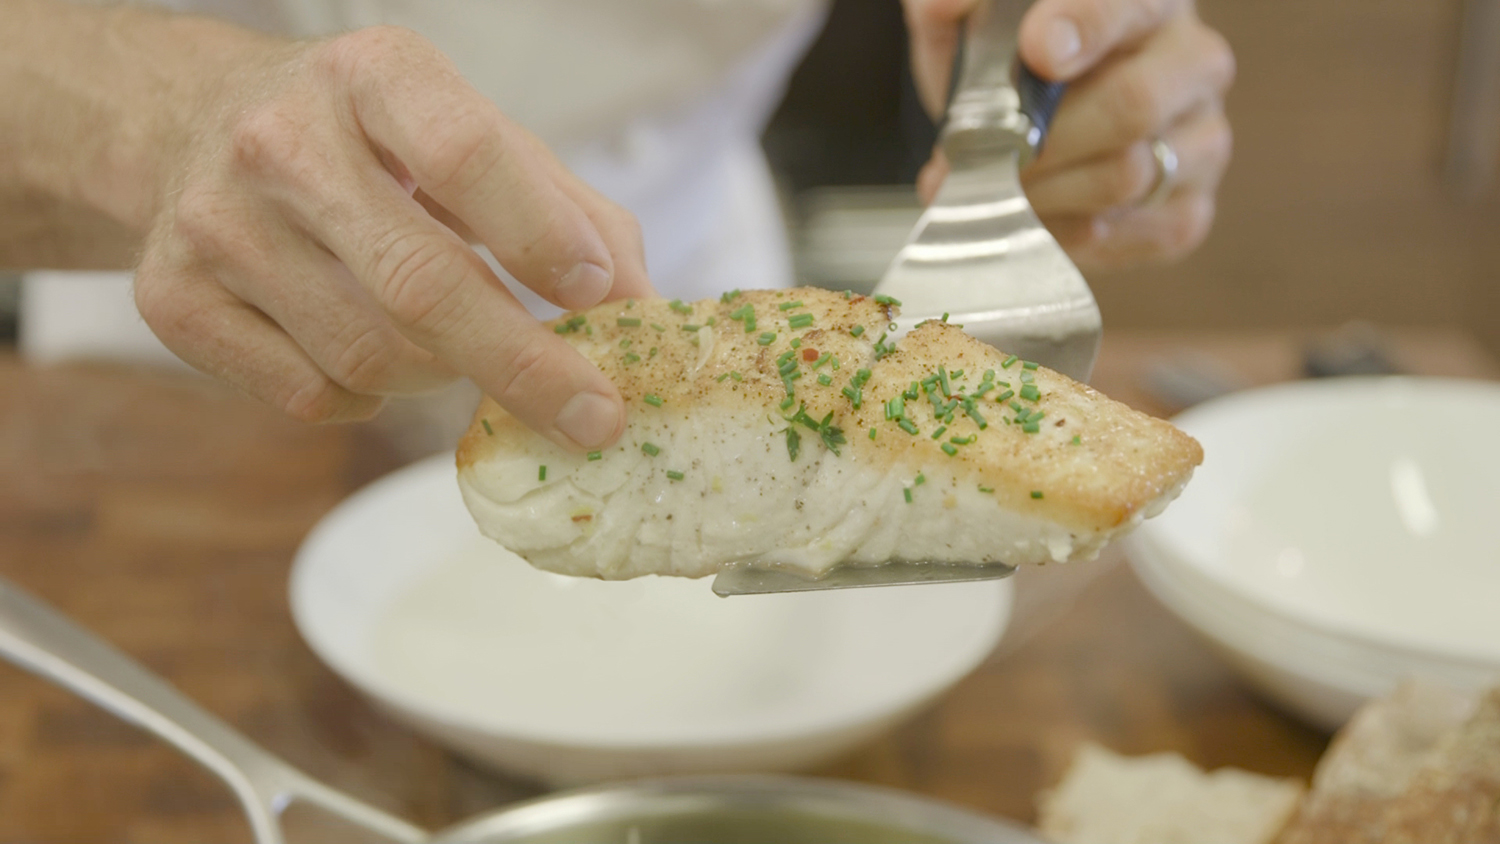 Preparation-WildPacificHalibut.jpg